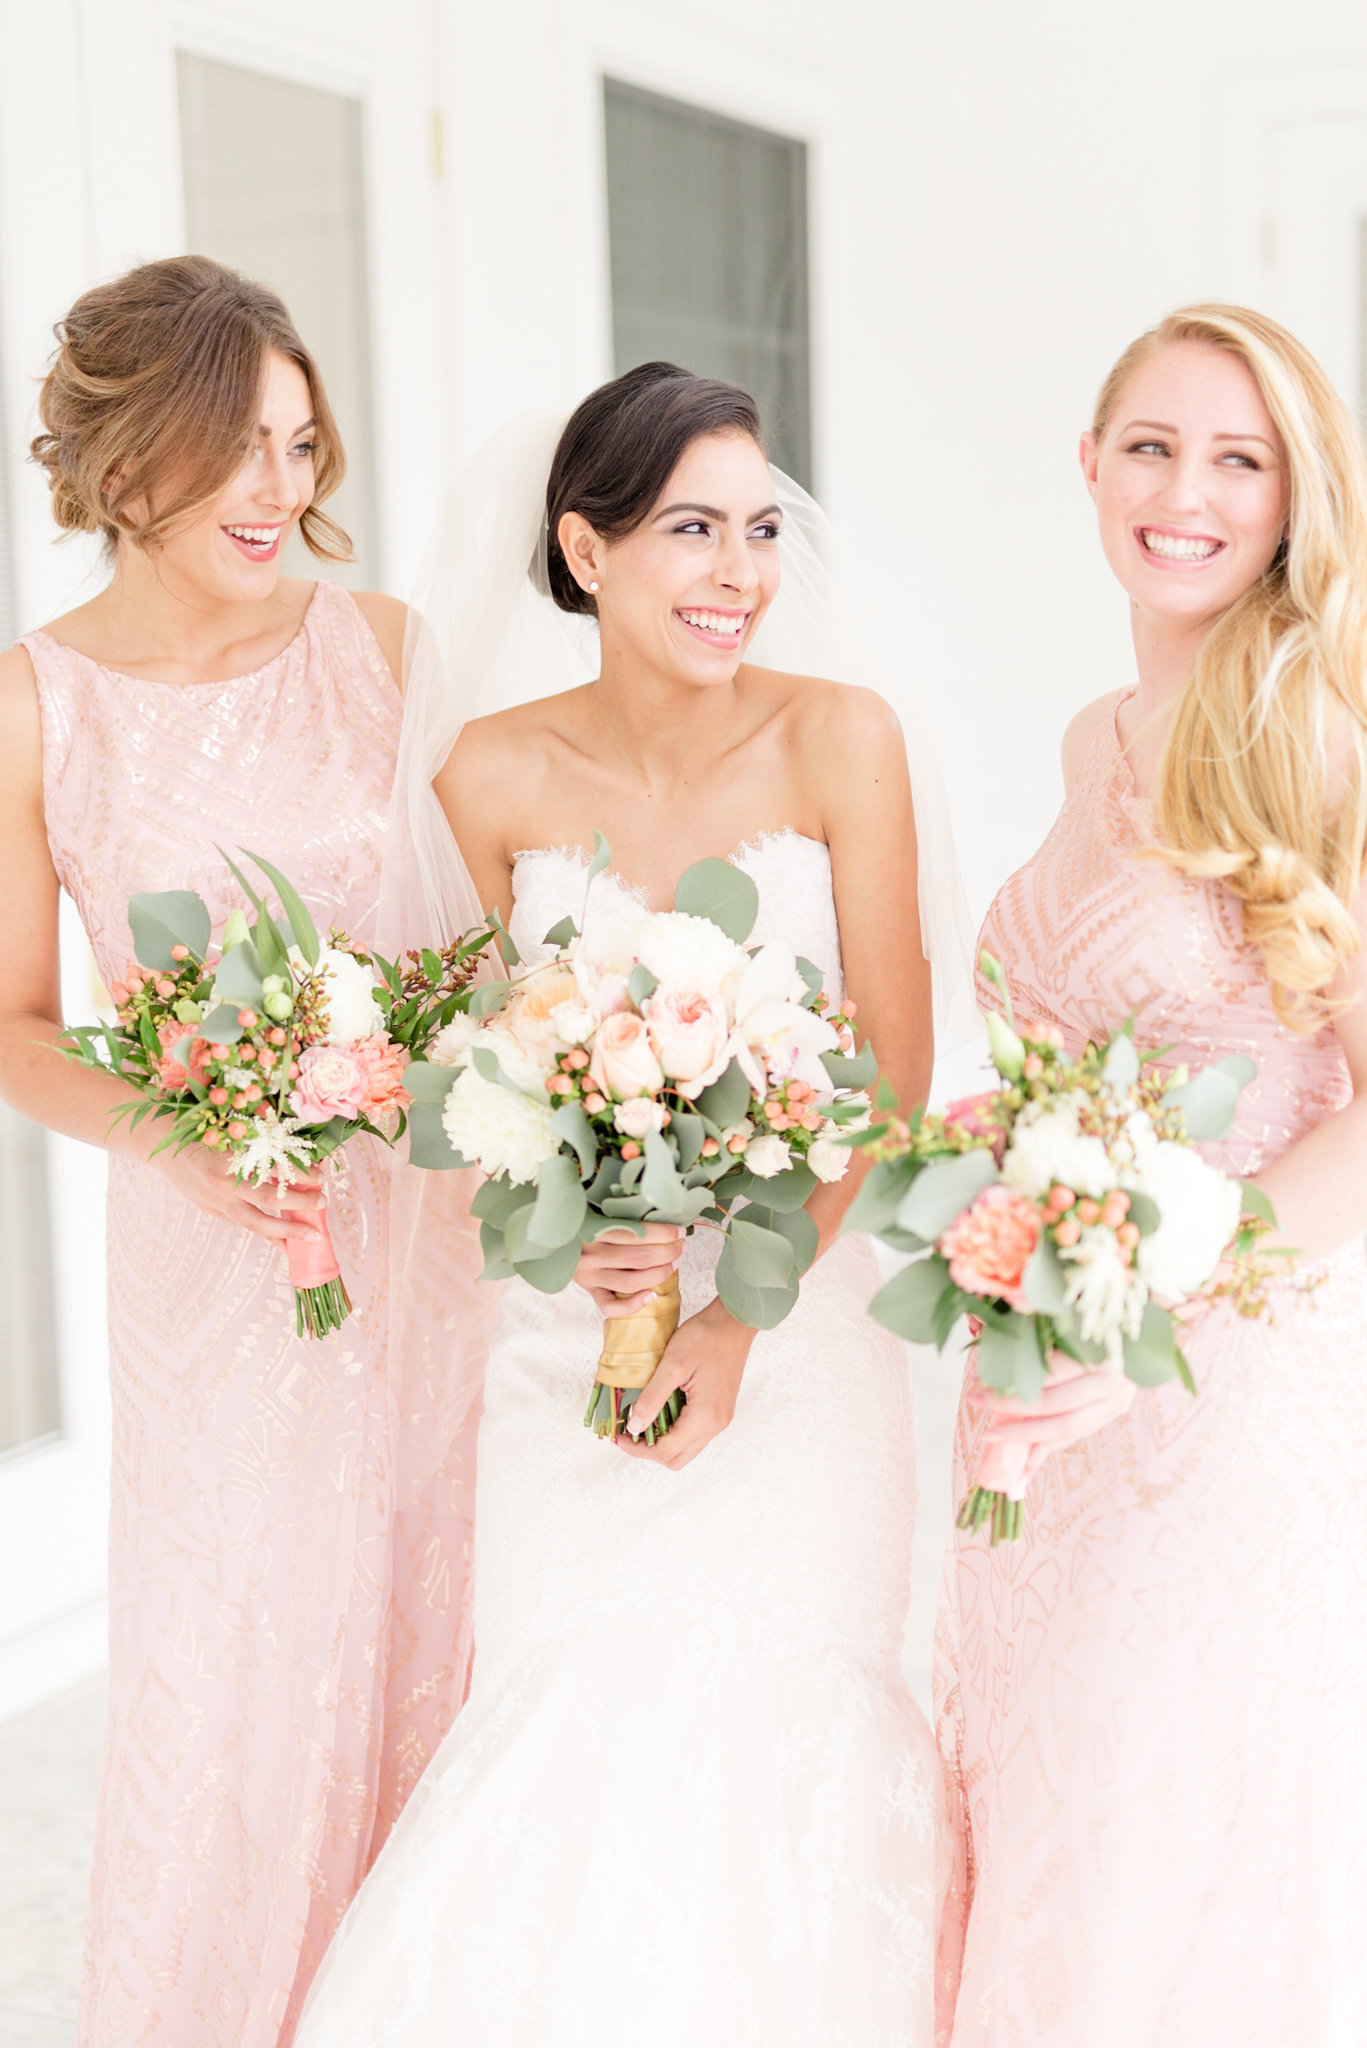 Bride and Bridesmaids laugh during portraits.